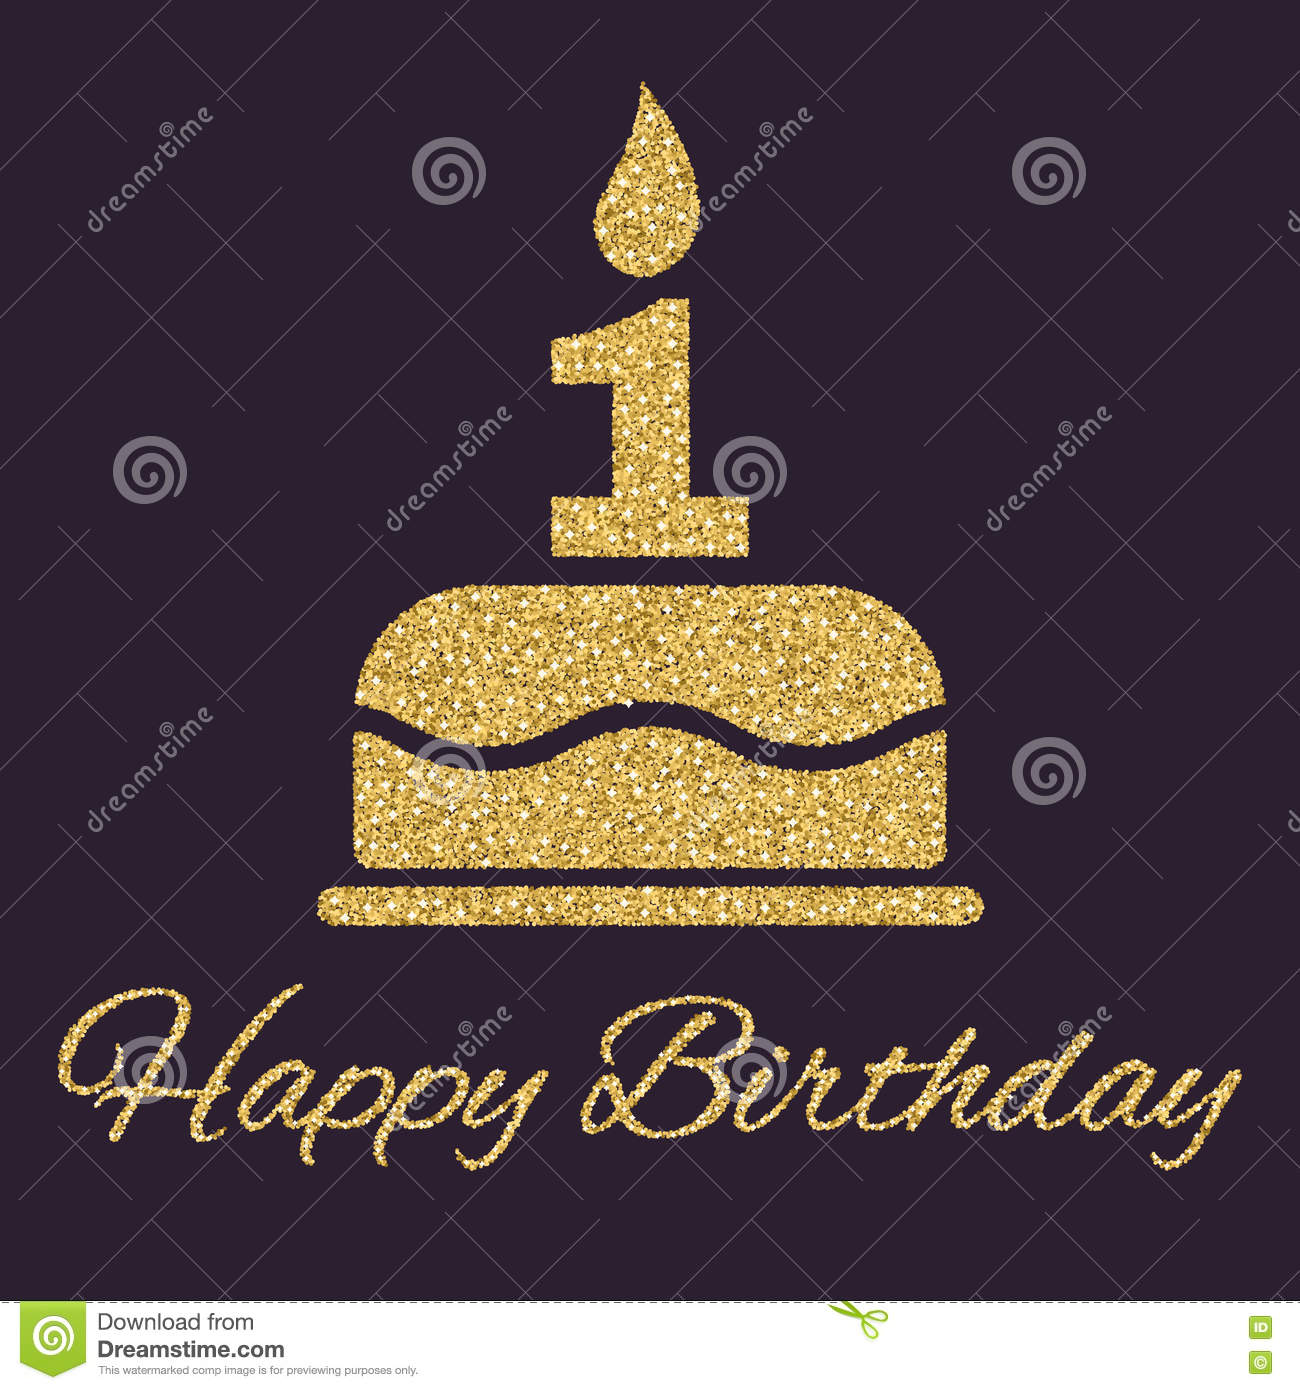 The Birthday Cake With Candles In Form Of Number 1 Symbol Gold Sparkles And Glitter Vector Illustration